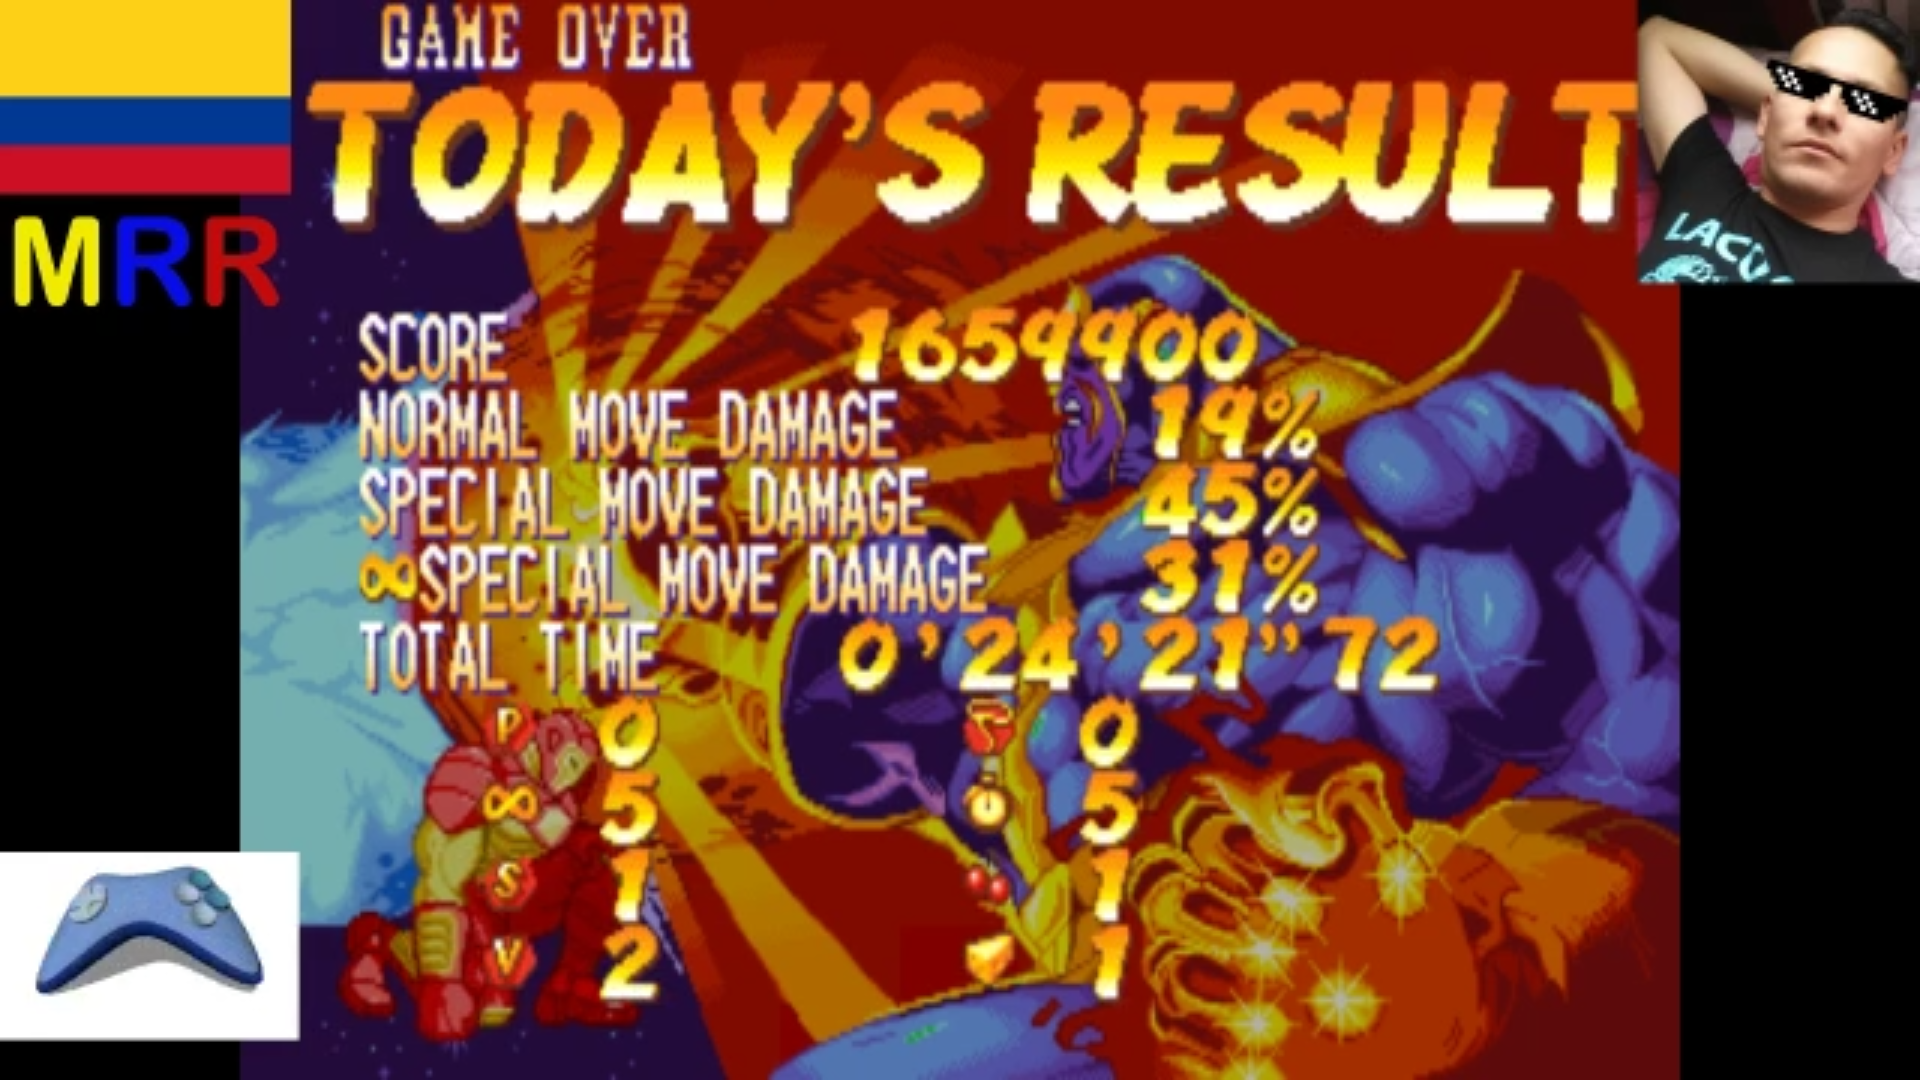 AmoKronos: Marvel Super Heroes [msh] (Arcade Emulated / M.A.M.E.) 1,659,900 points on 2017-05-05 05:43:22